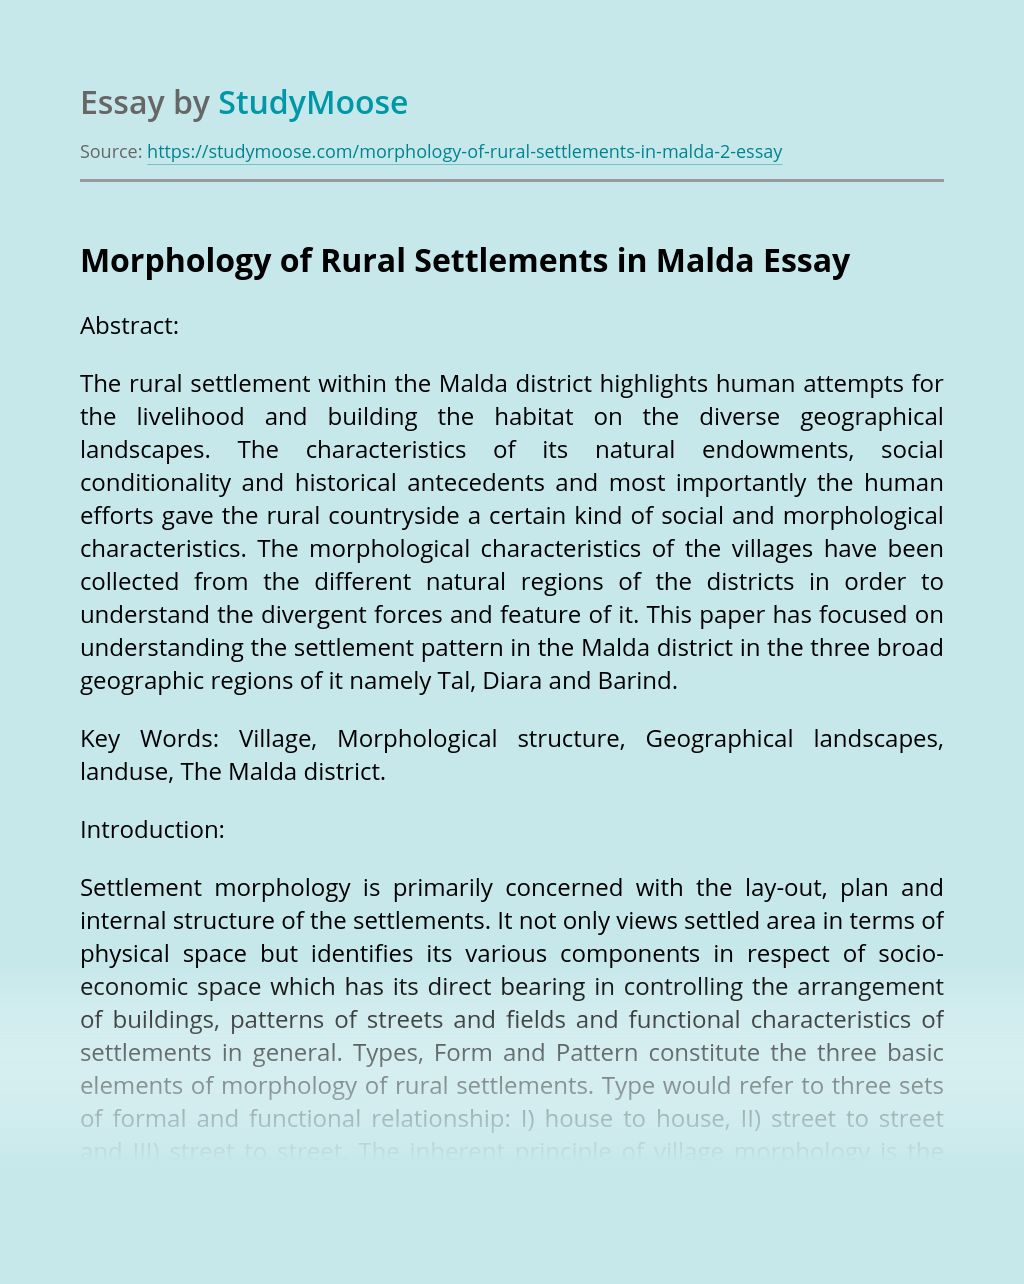 Morphology of Rural Settlements in Malda